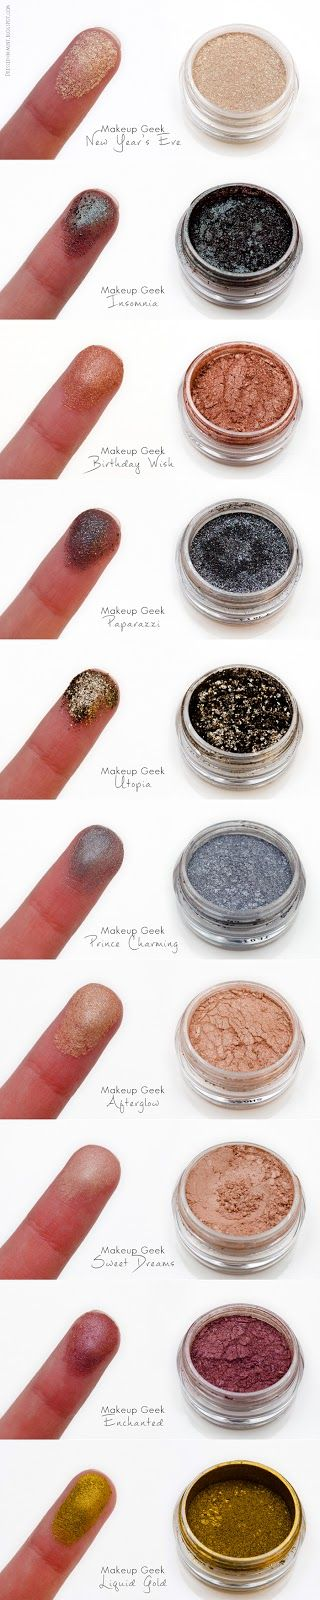 Afterglow has been in my everyday make-up routine, but I plan on getting them all!  <3   (Makeup Geek Pigment Swatches & Review by Dressed In Mint)